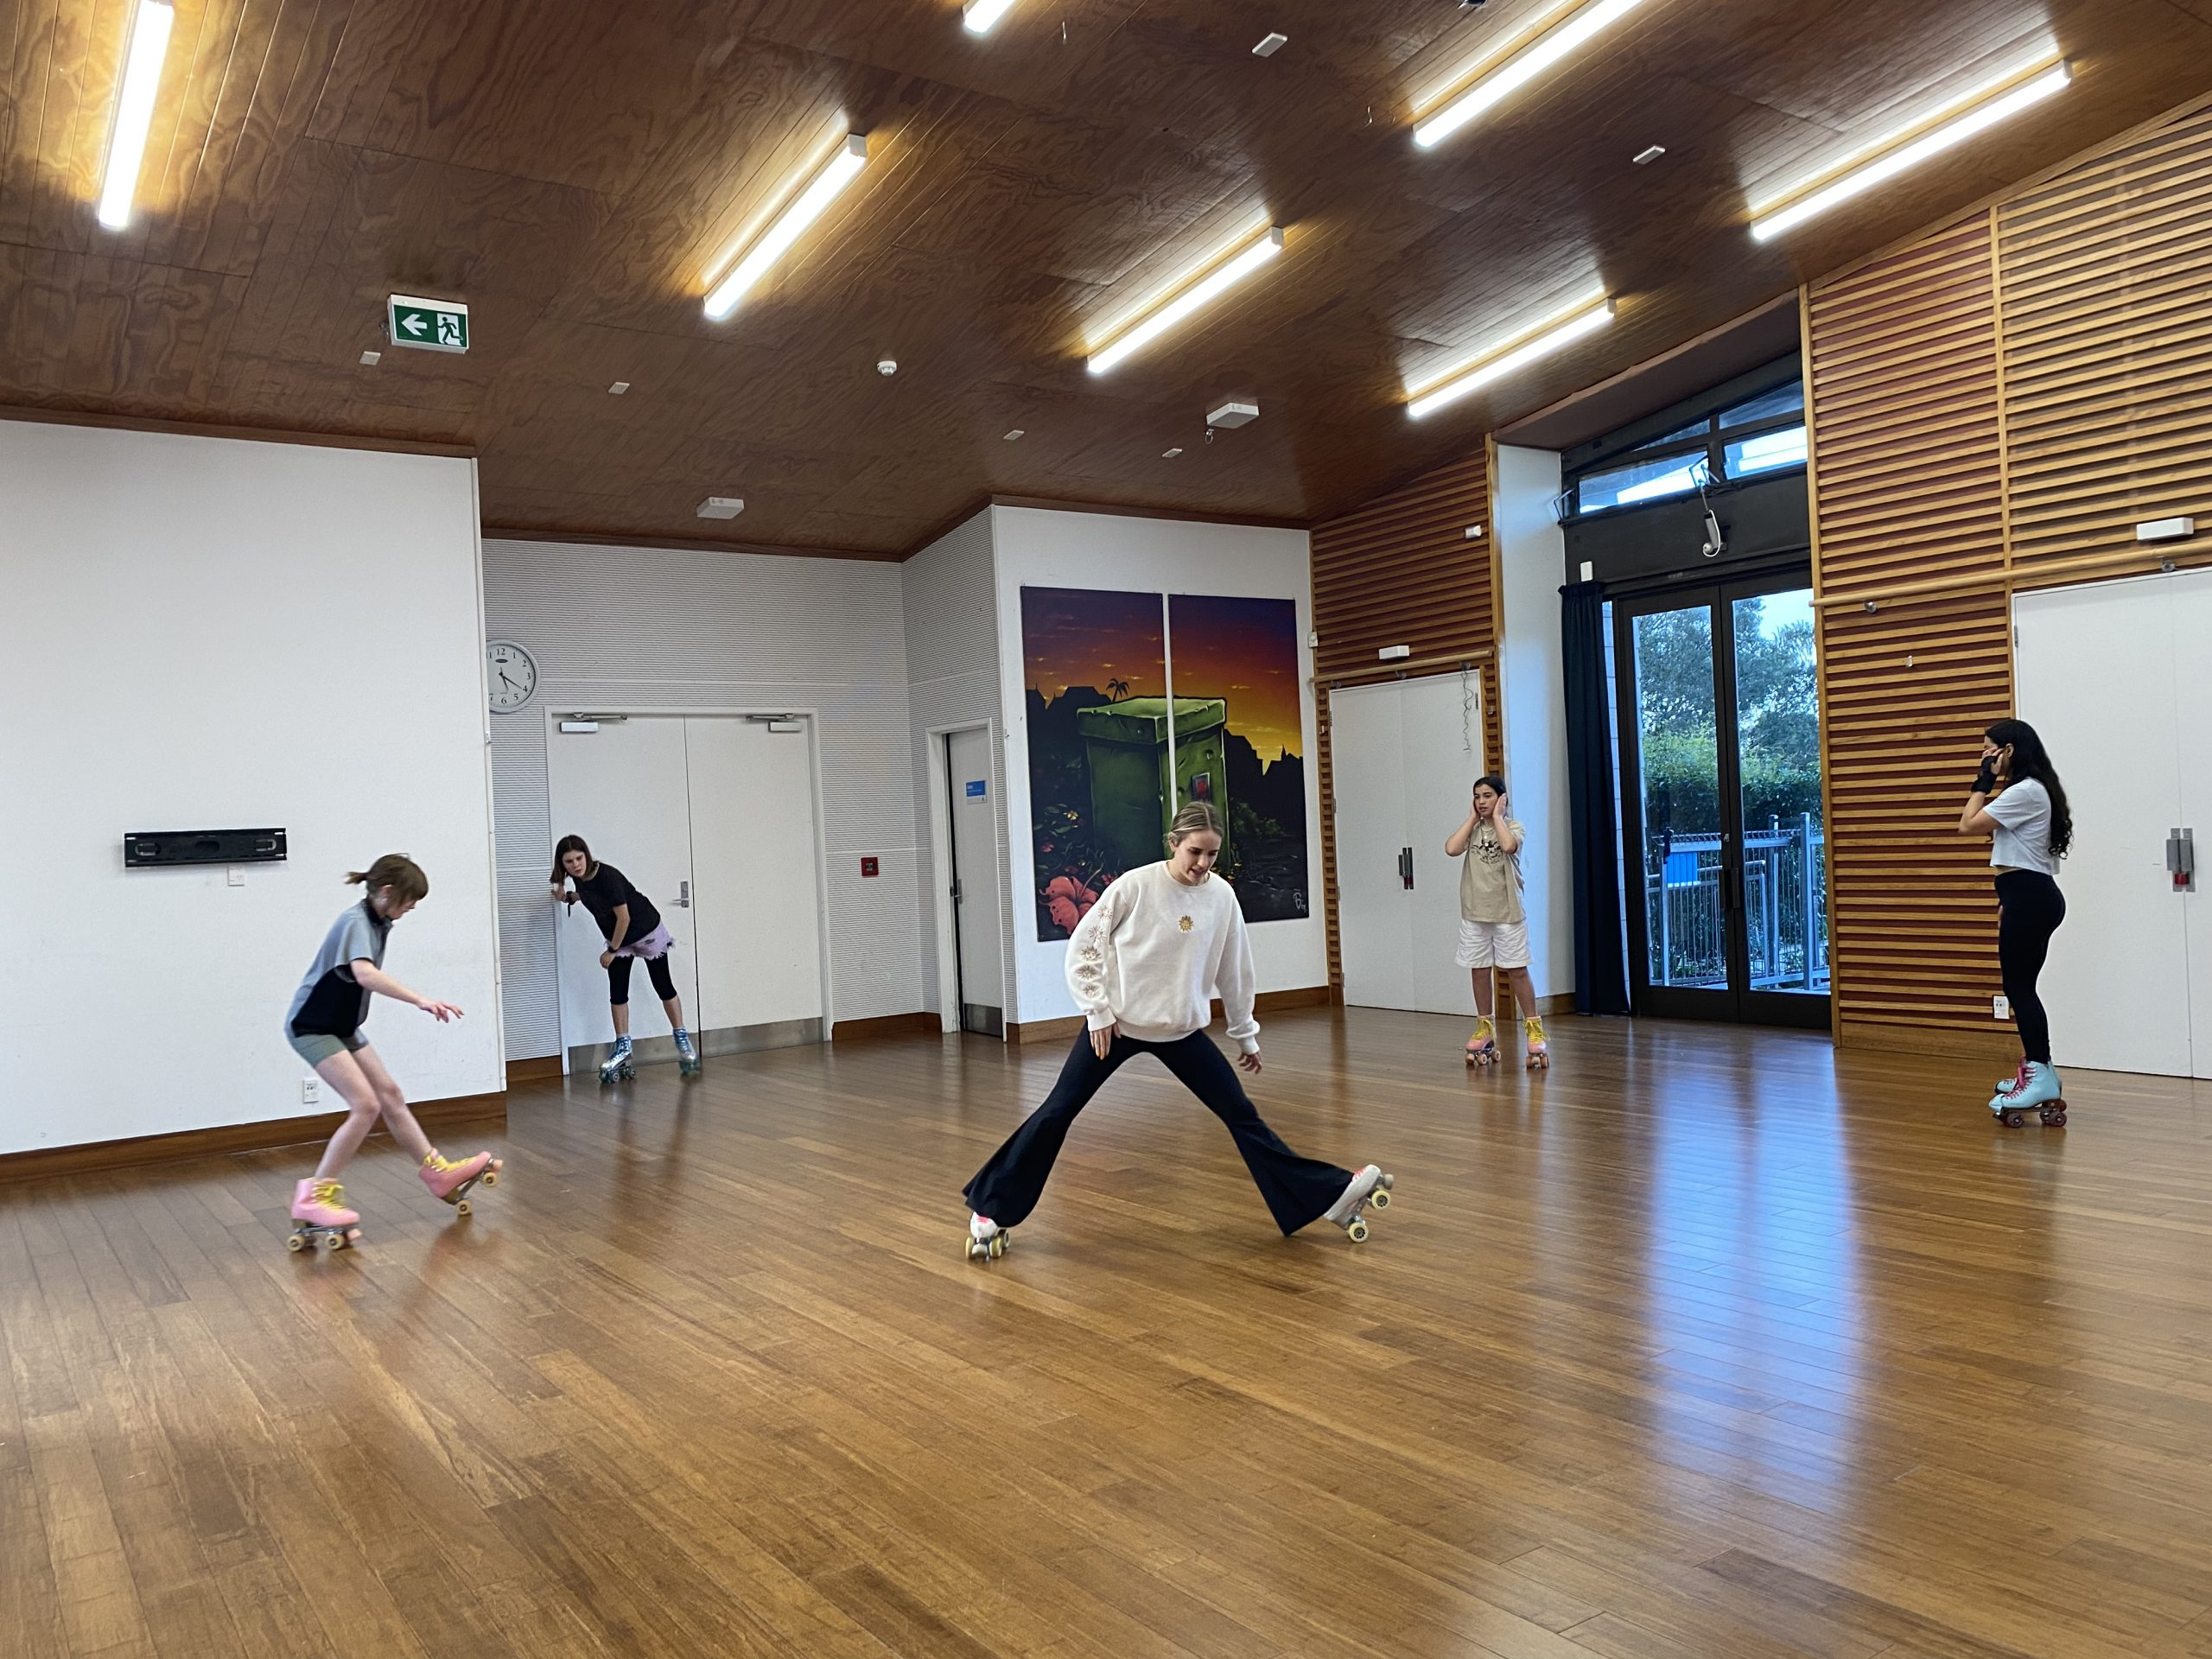 macarena teaches roller skating to a group of skaters in Grey Lynn Community Centre